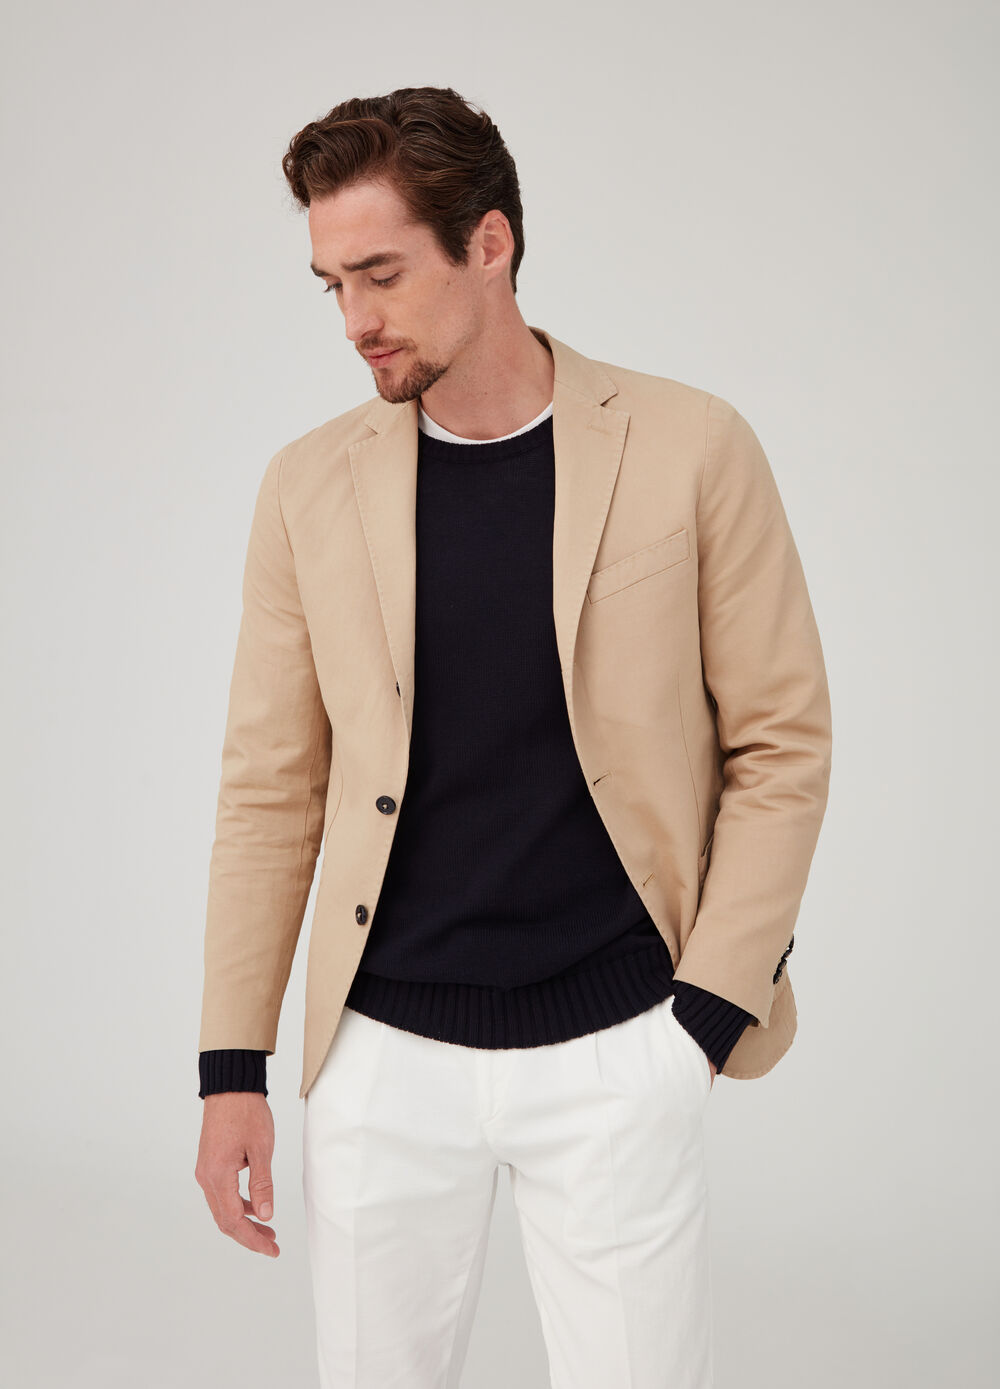 Rumford blazer with lapels and pockets